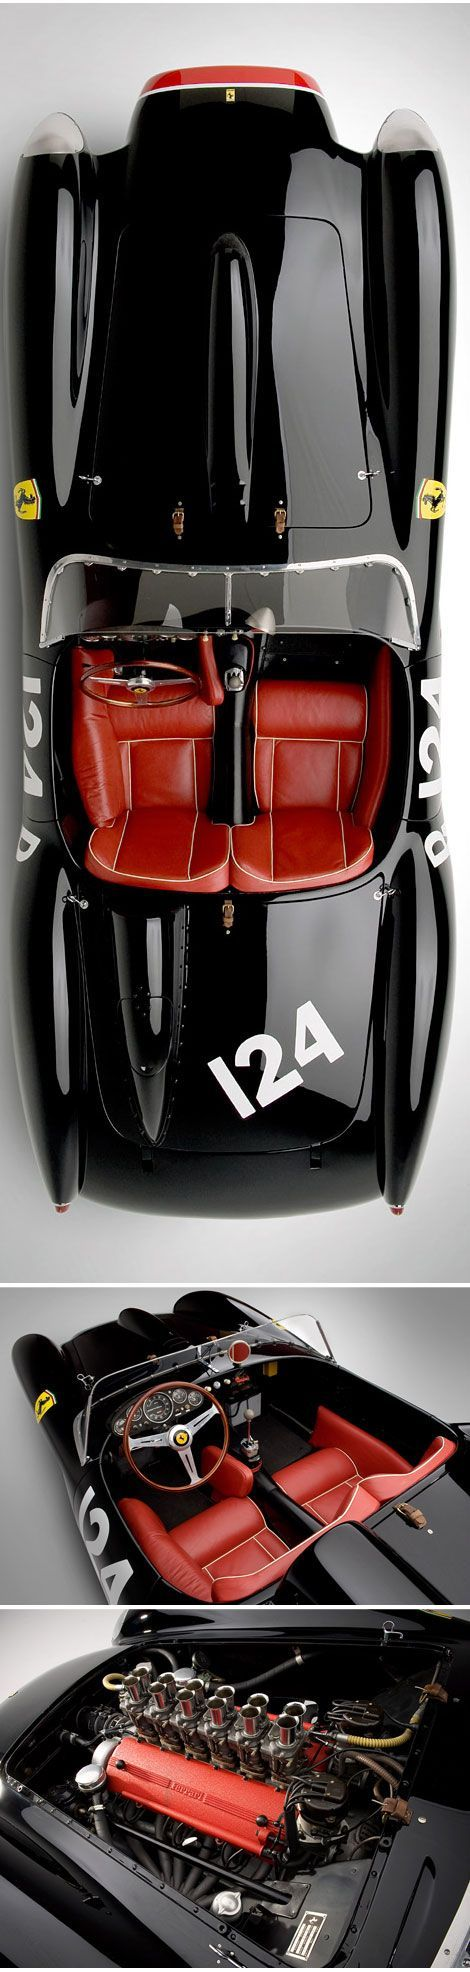 1957 Ferrari 250 TR  #RePin by AT Social Media Marketing - Pinterest Marketing Specialists ATSocialMedia.co.uk